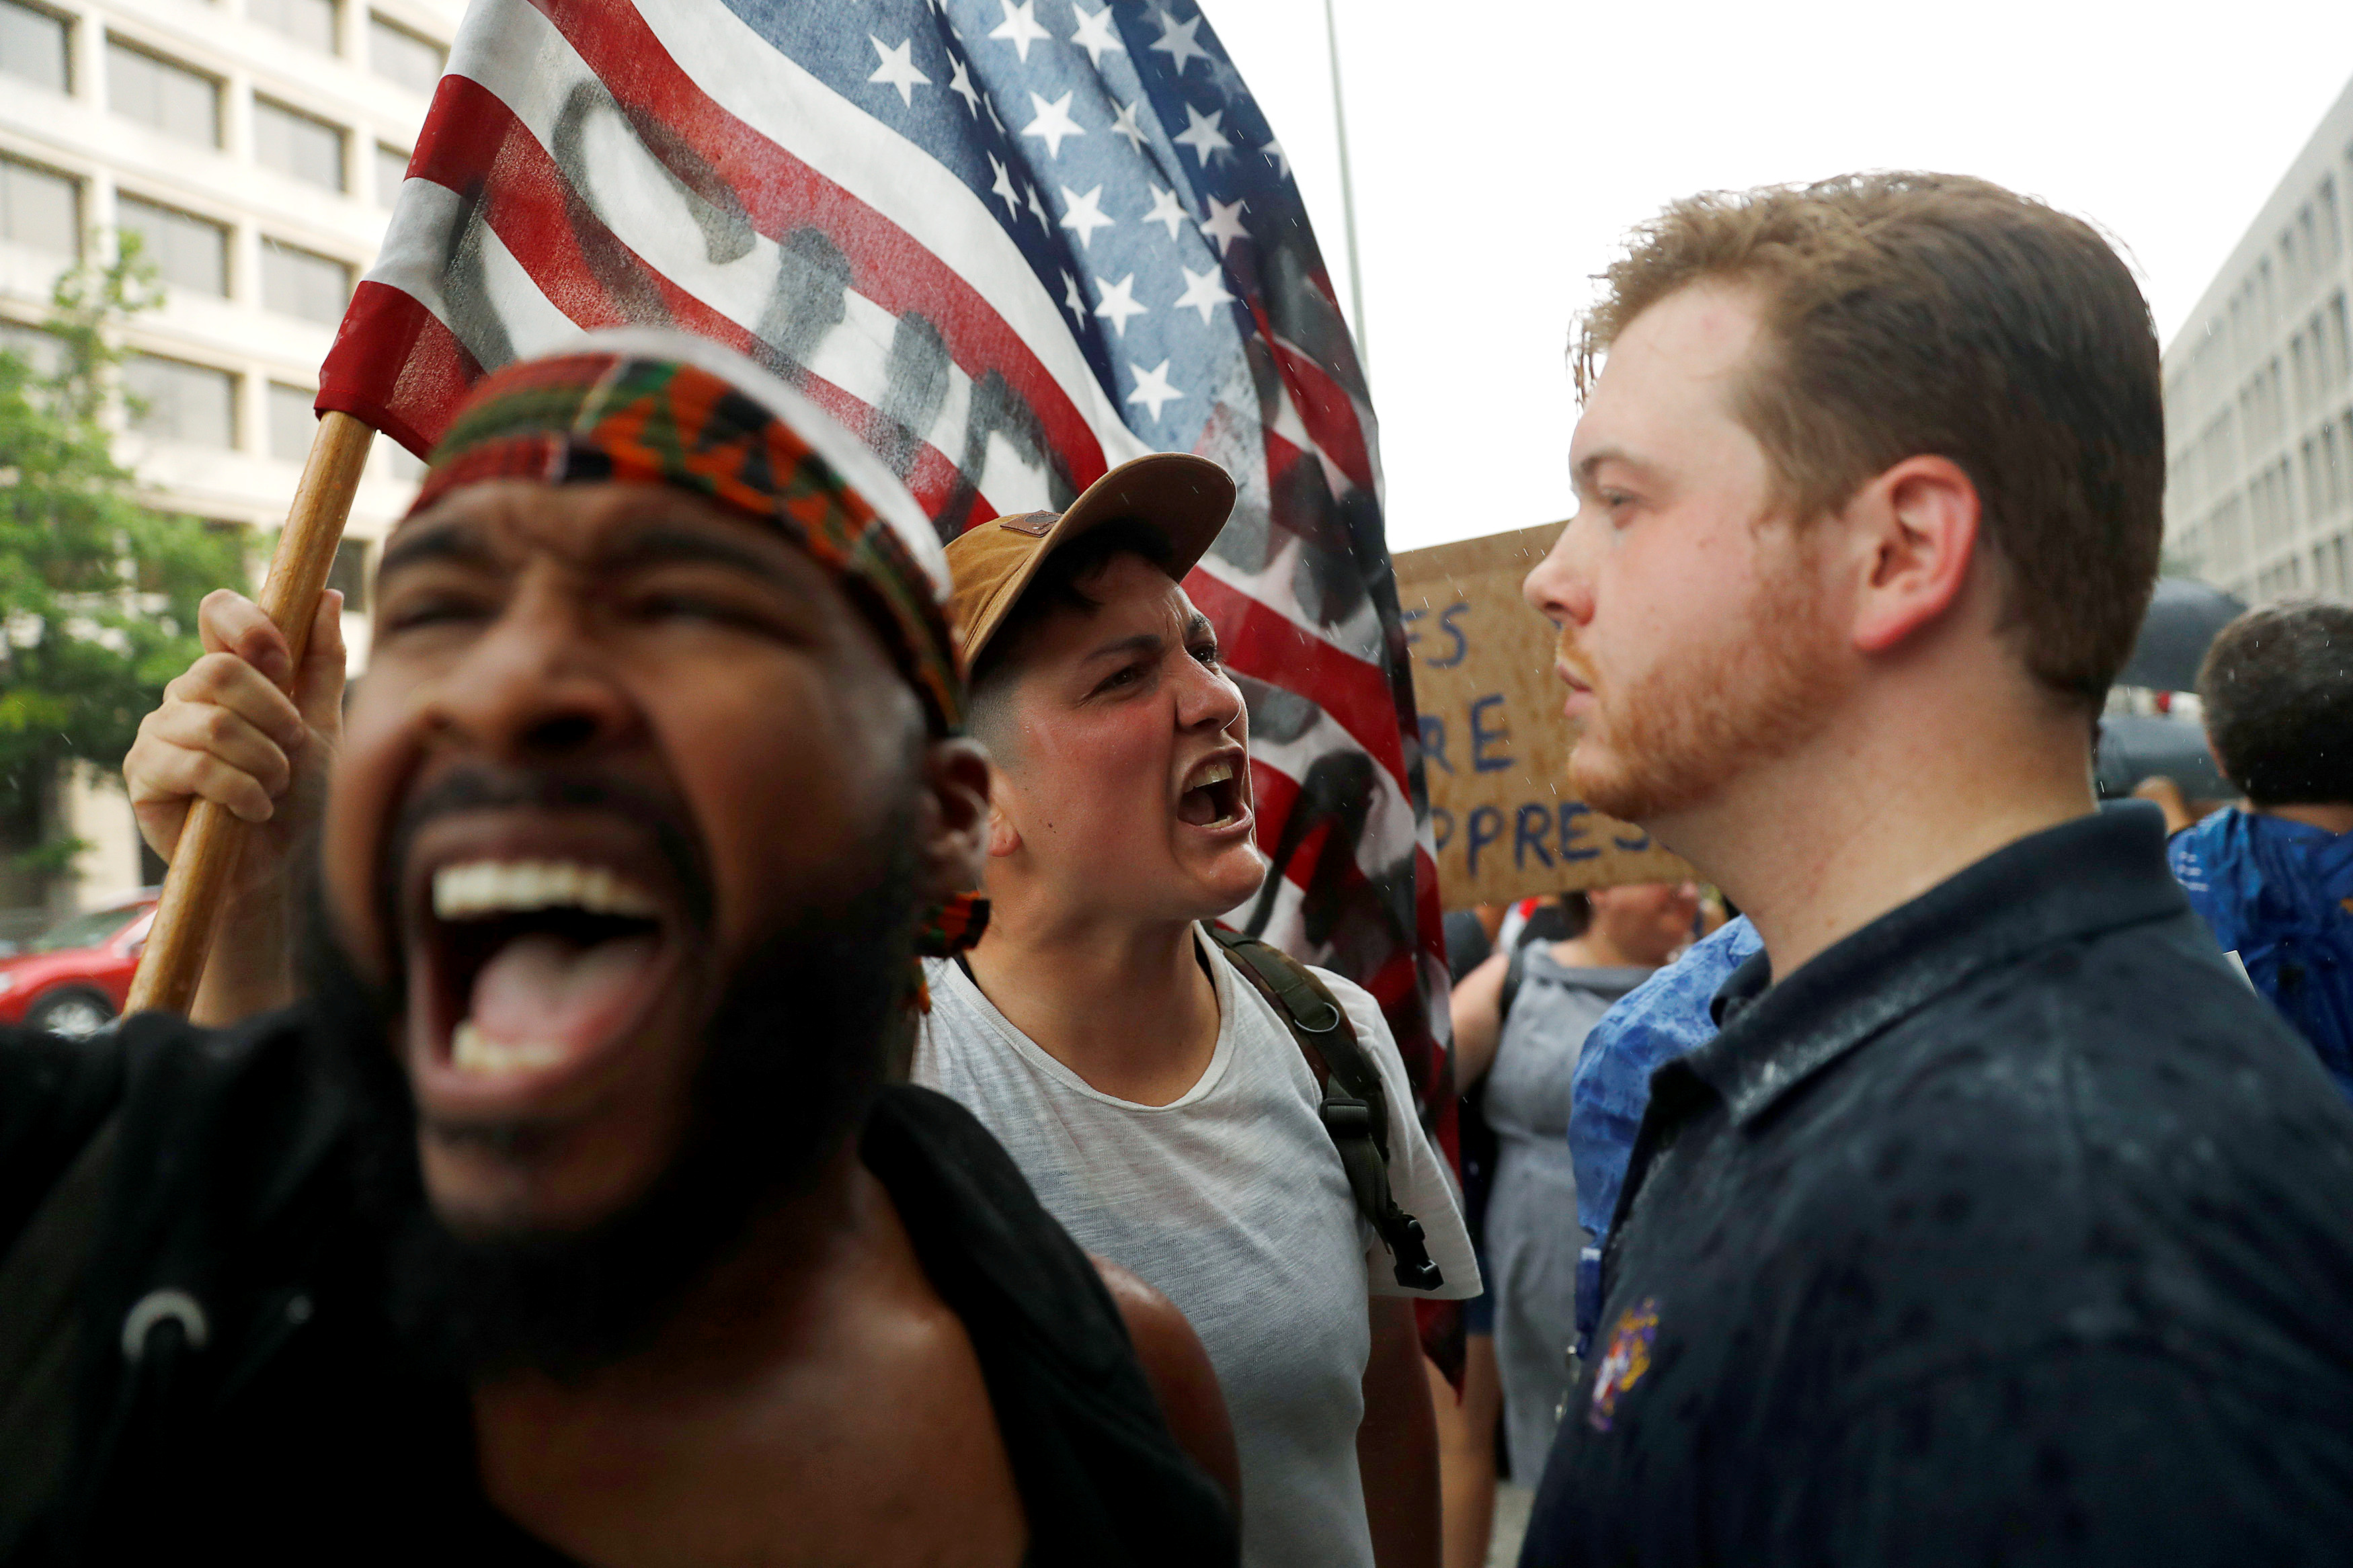 Demonstrators confront reporters with The Daily Caller News Foundation during a protest calling for the removal of the statue of Confederate General Albert Pike in Washington, U.S., August 18, 2017. REUTERS/Aaron P. Bernstein